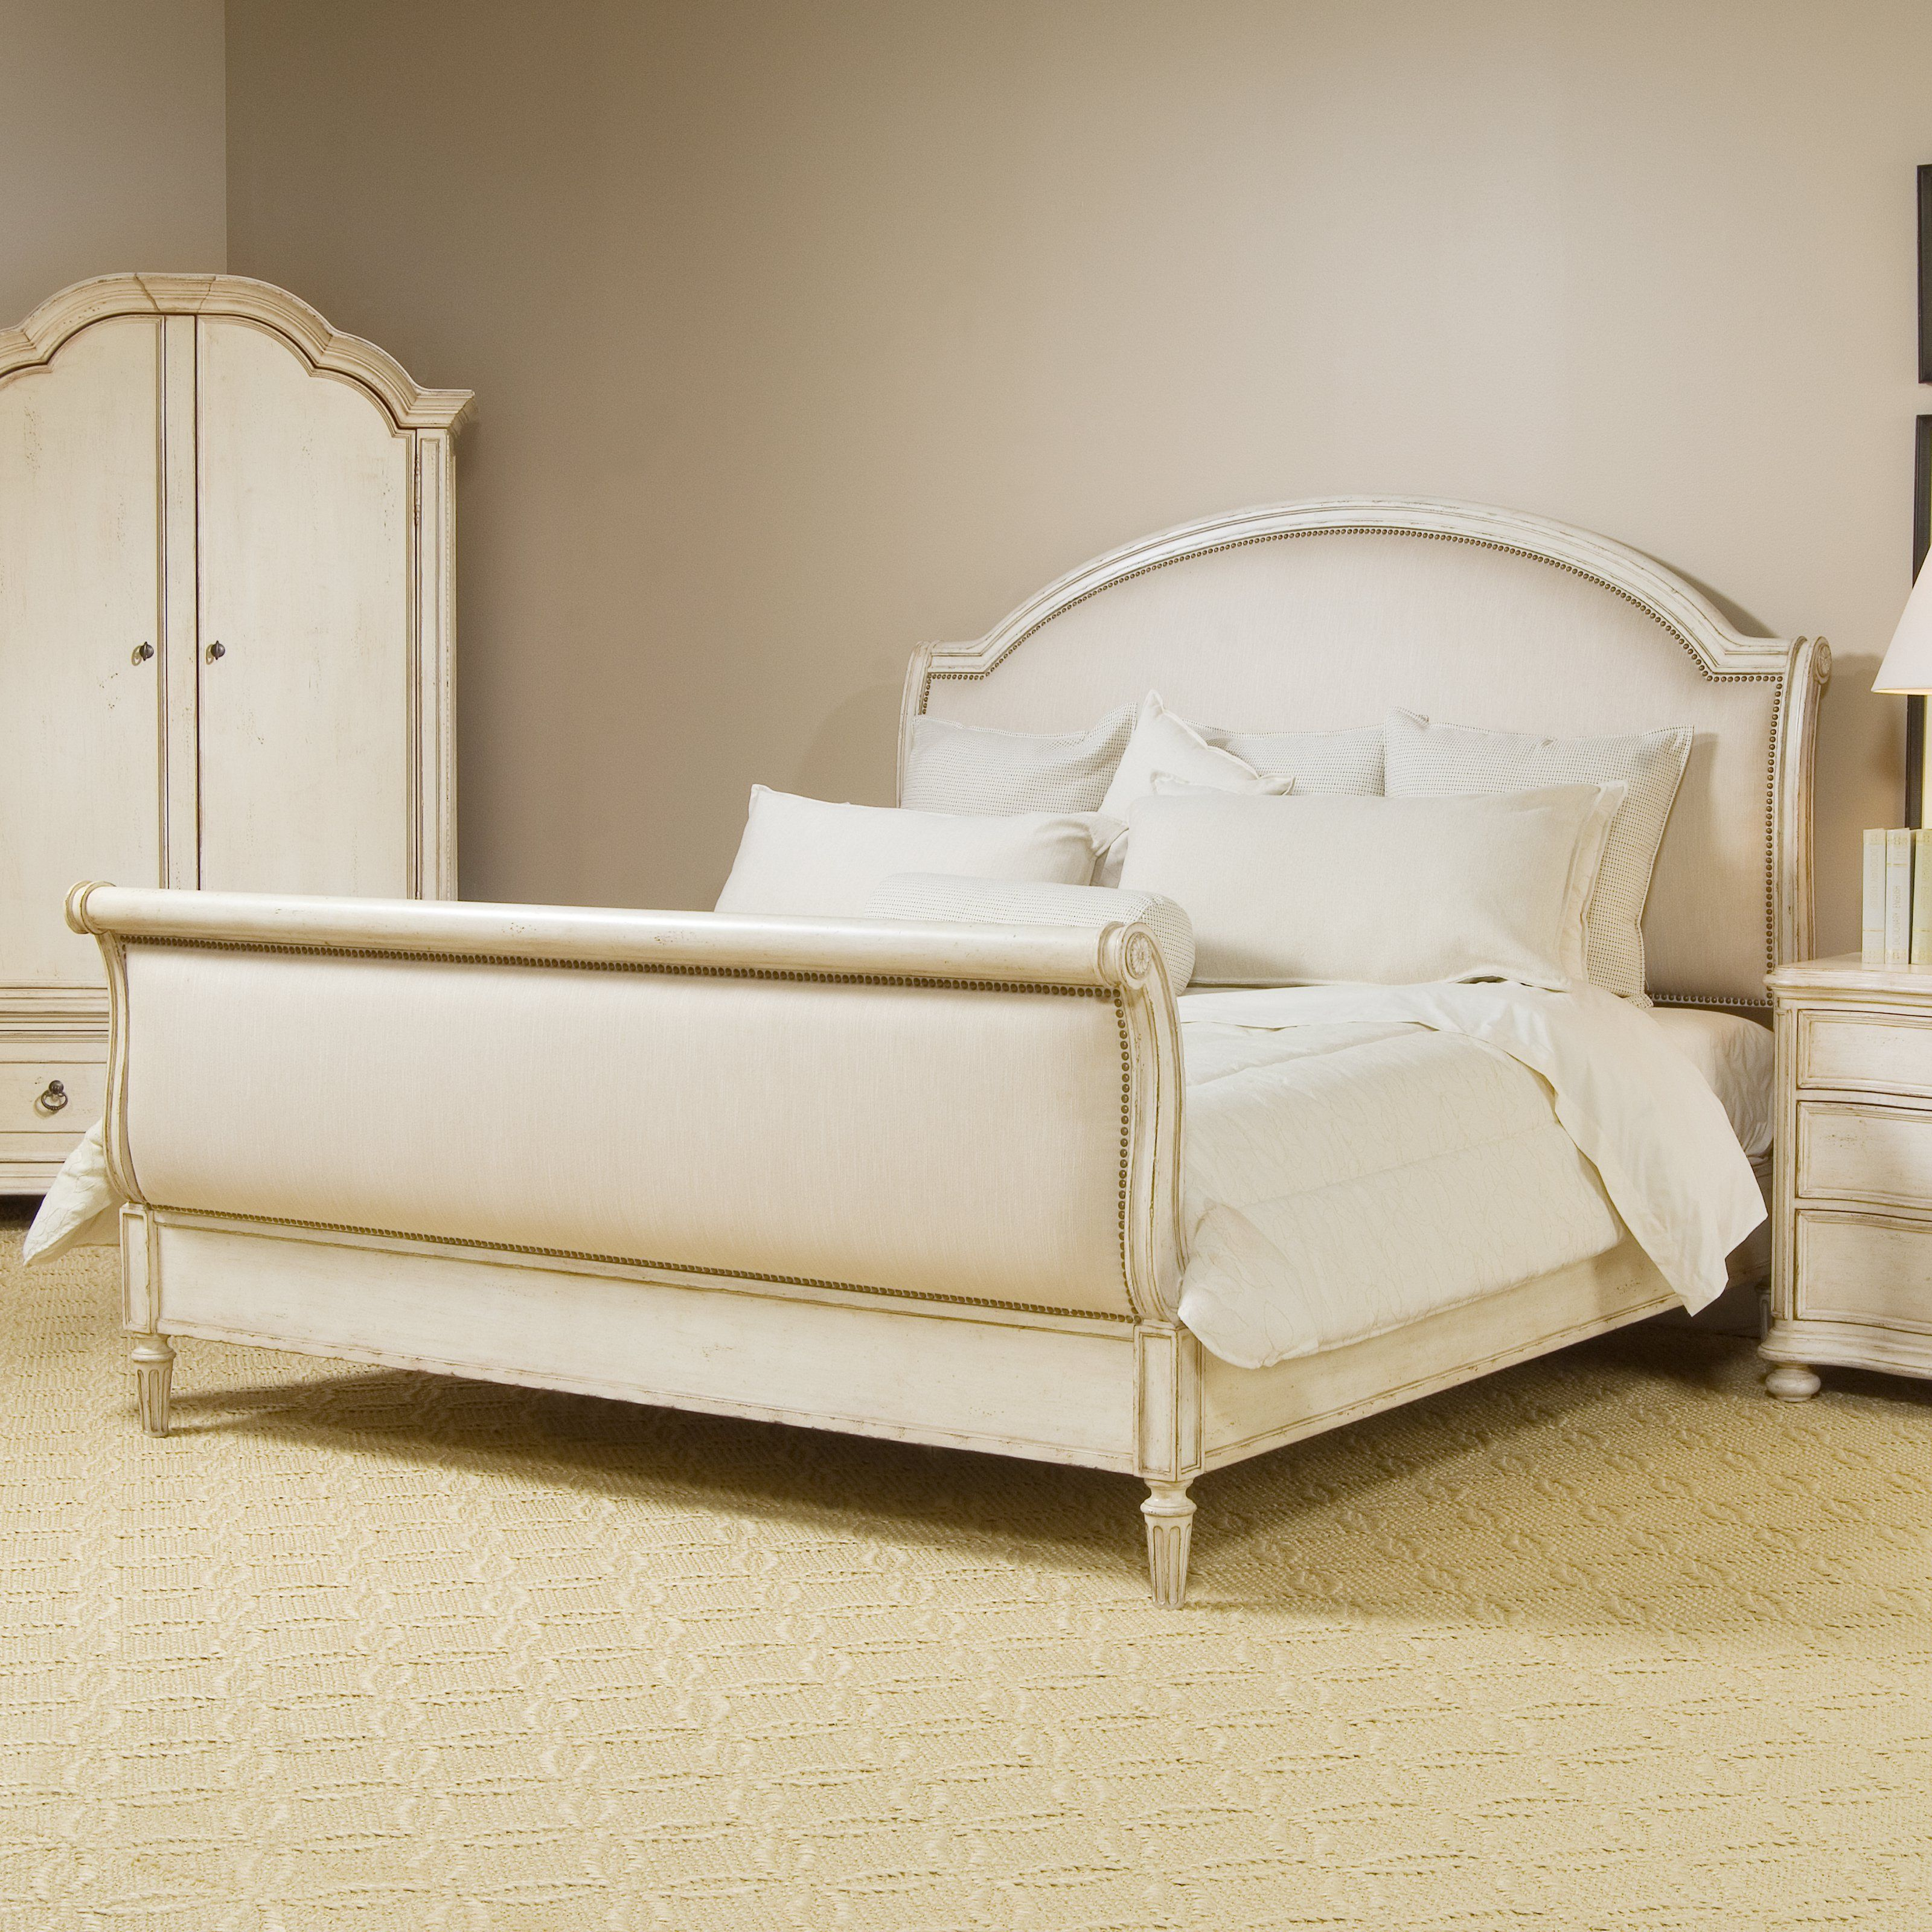 A.R.T. Furniture Provenance Upholstered Sleigh Bed from